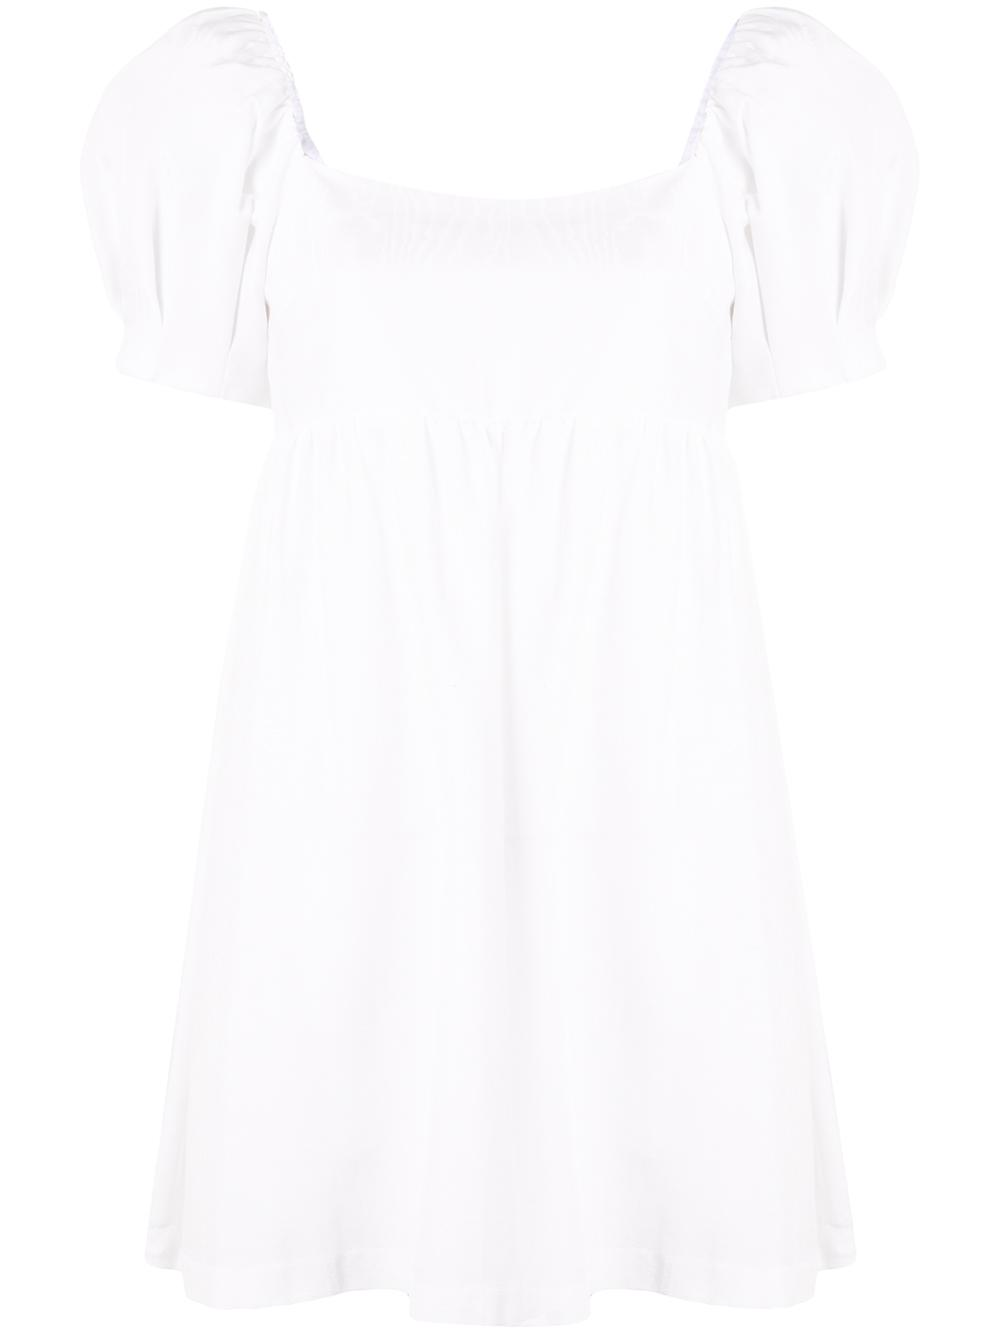 Bauery Puff Sleeve Babydoll Dress